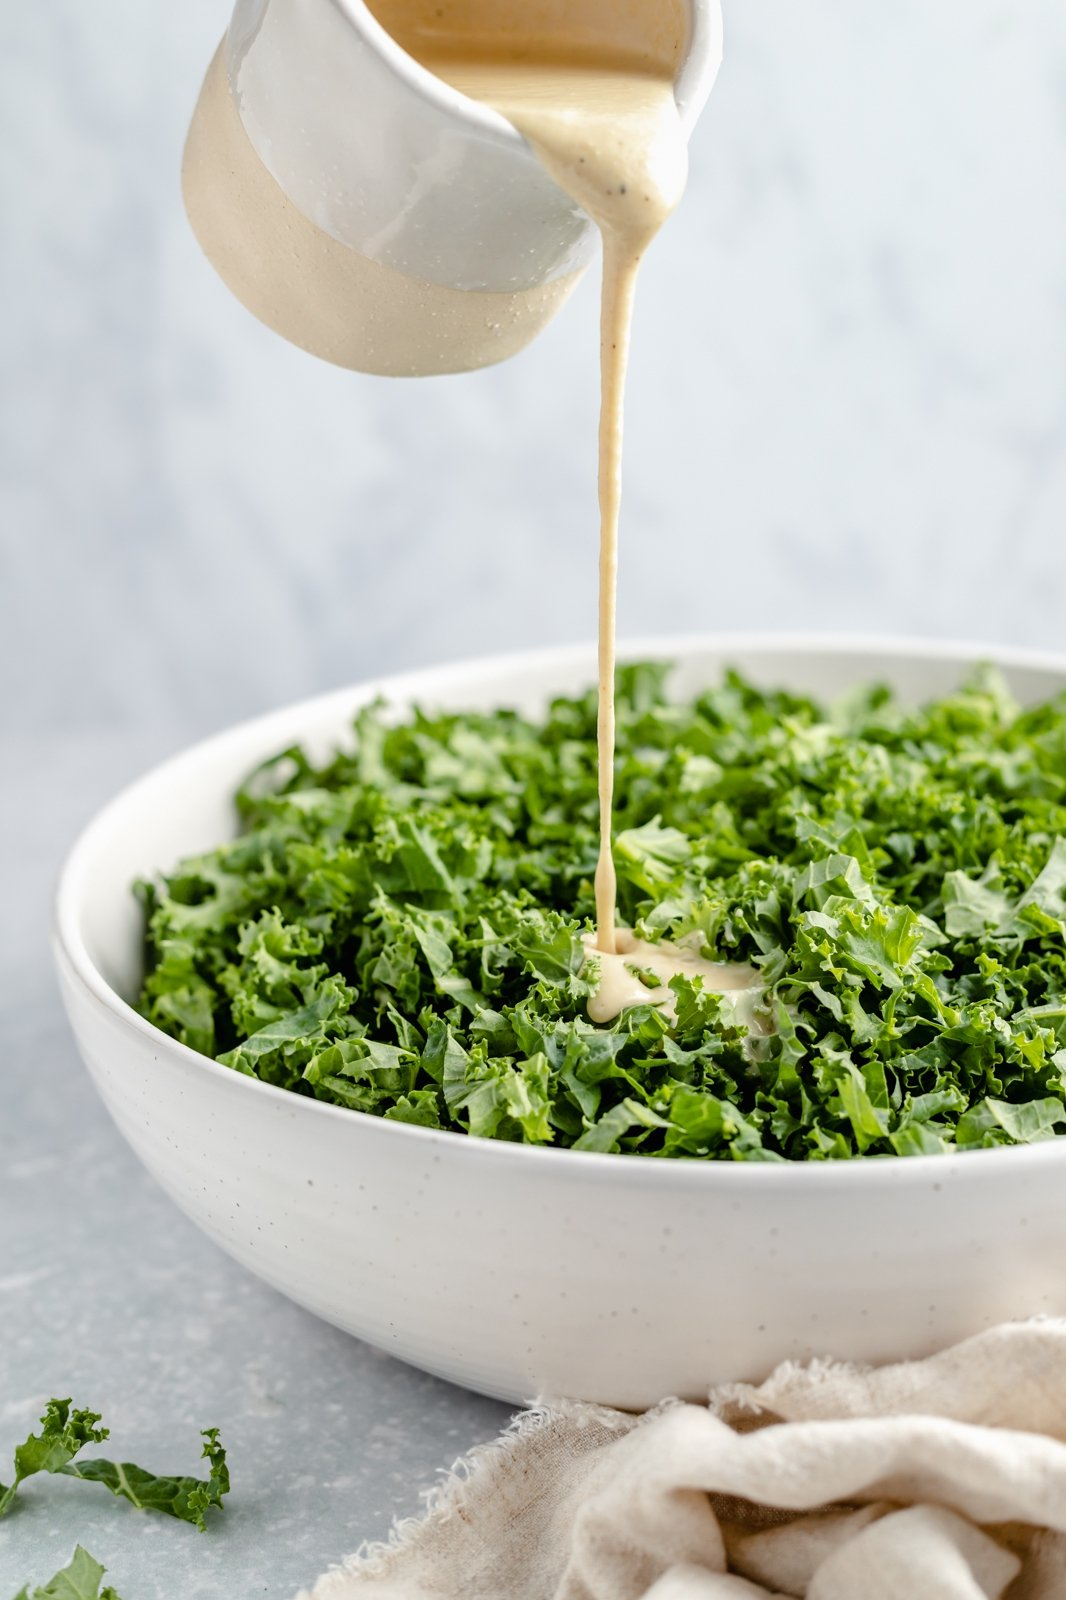 pouring tahini dressing onto a bowl of kale